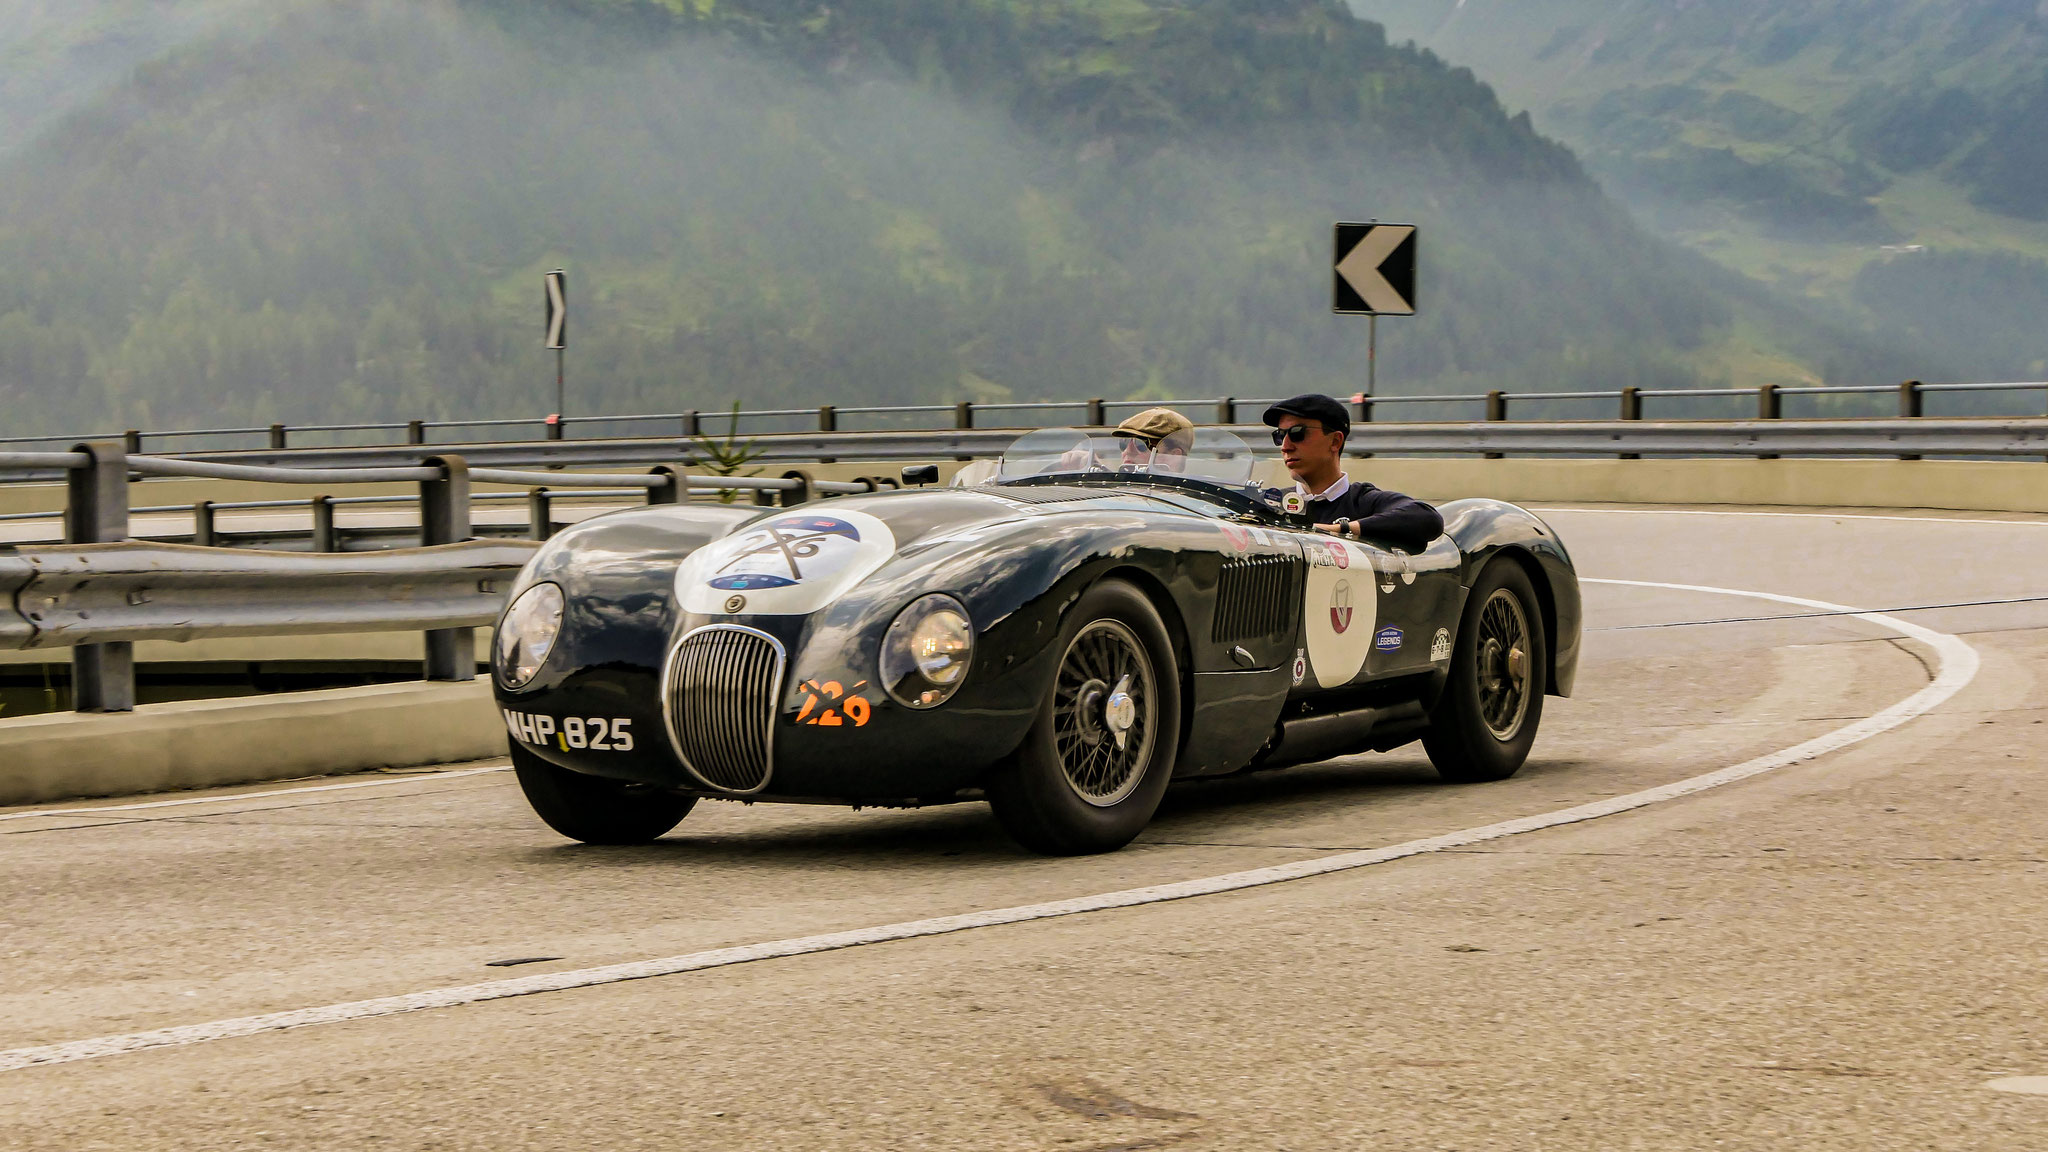 Jaguar C-Type - MHP-825 (GB)